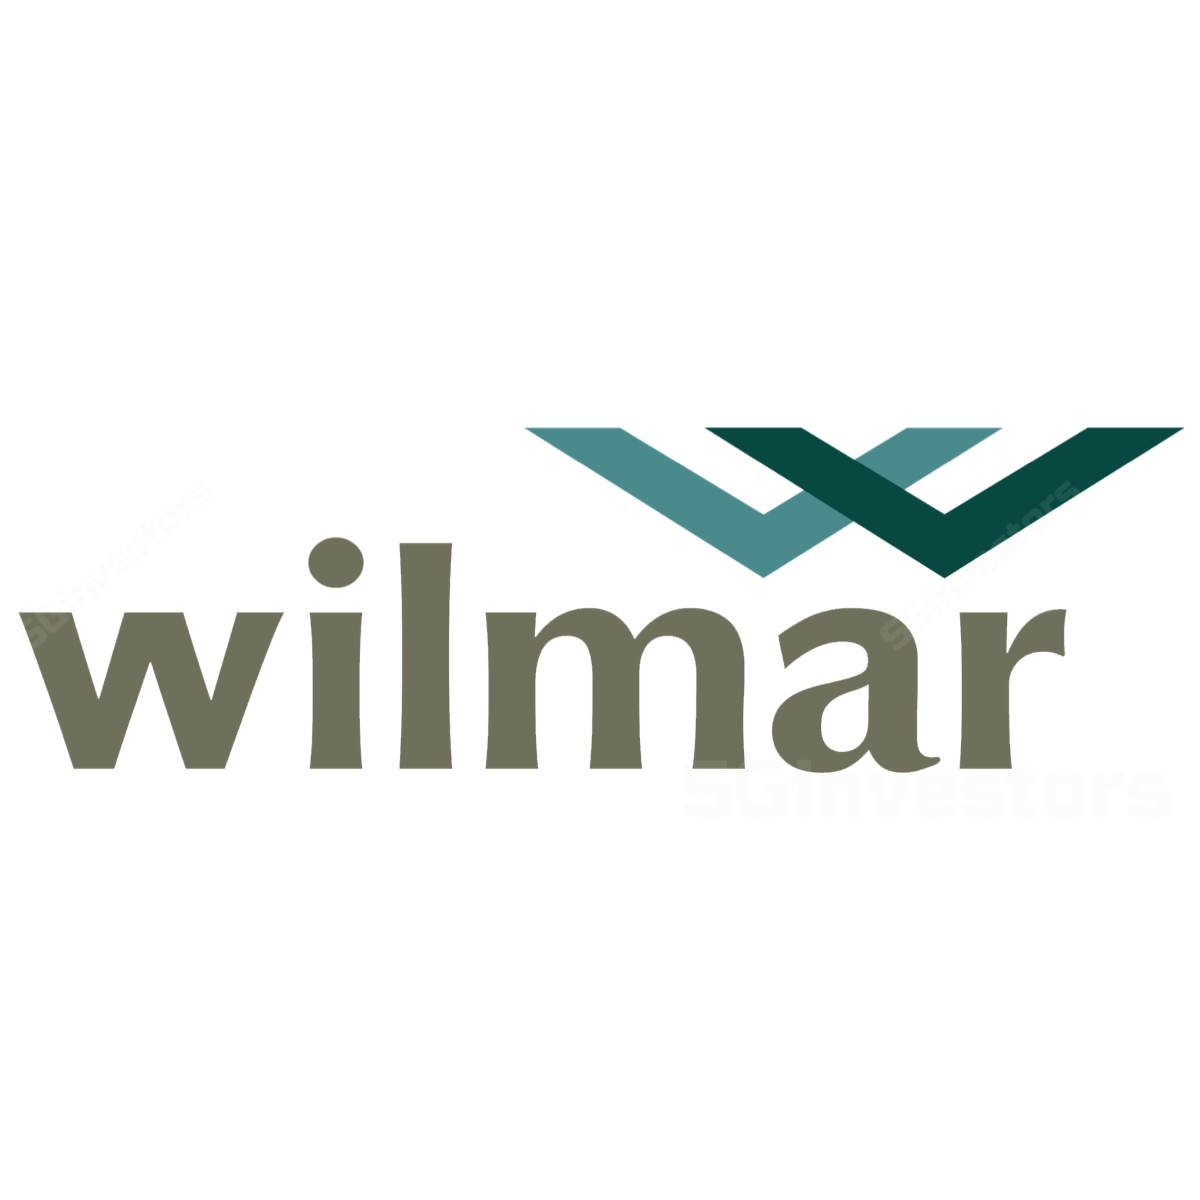 Wilmar - RHB Invest 2017-05-12: China Operations IPO Back On The Cards